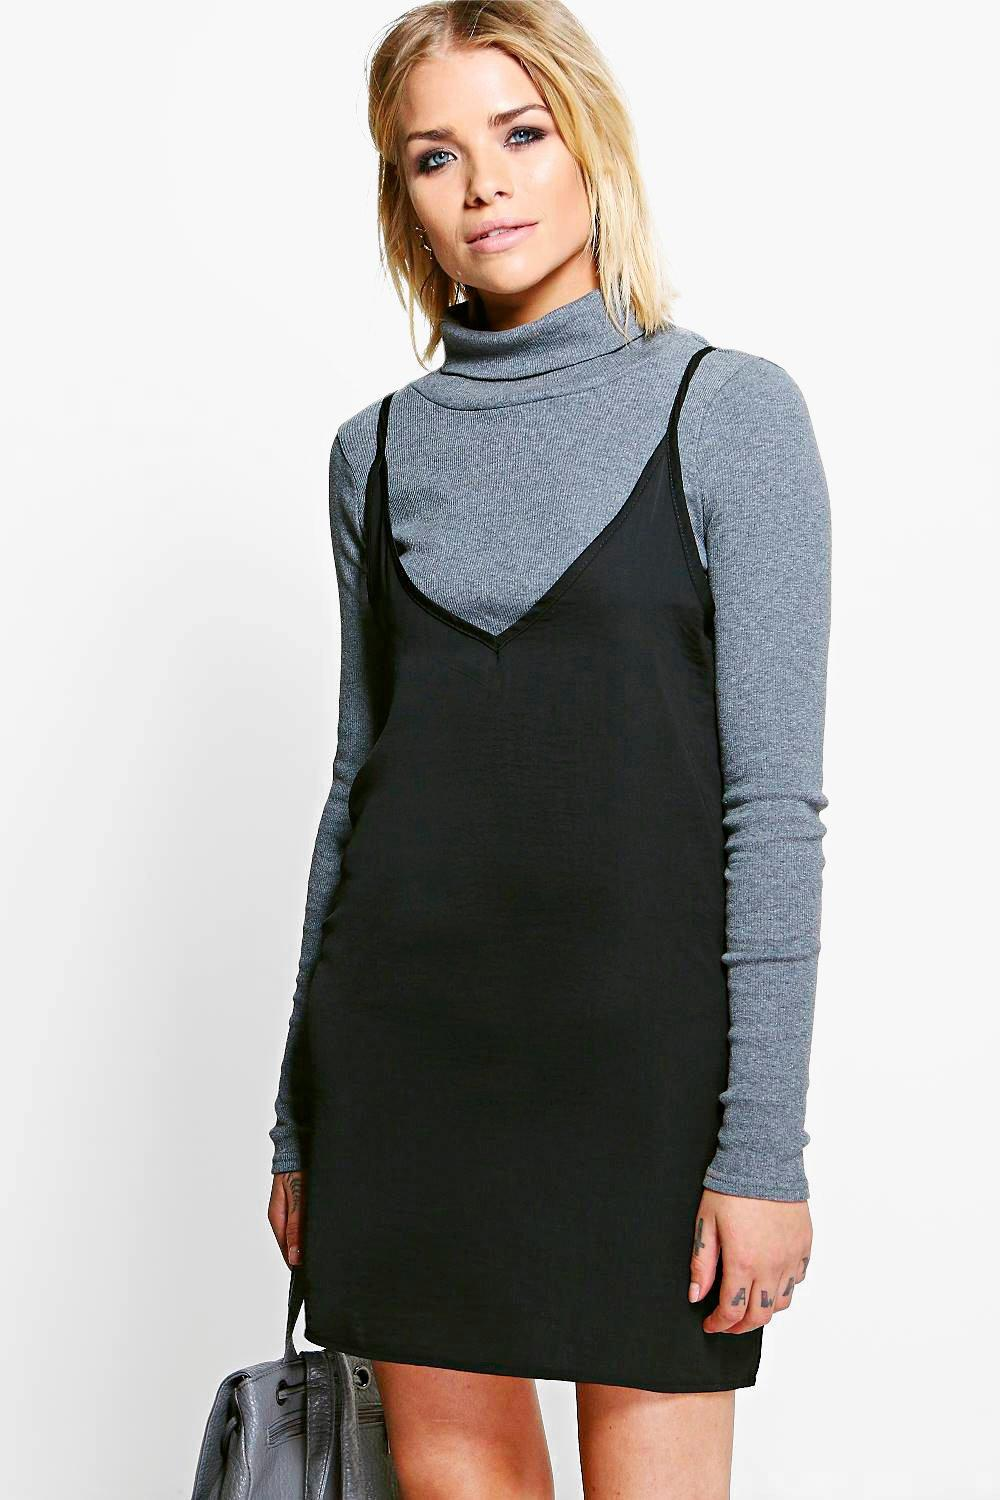 Image result for Rima 2 in 1 Cami with High Neck Slip Dress